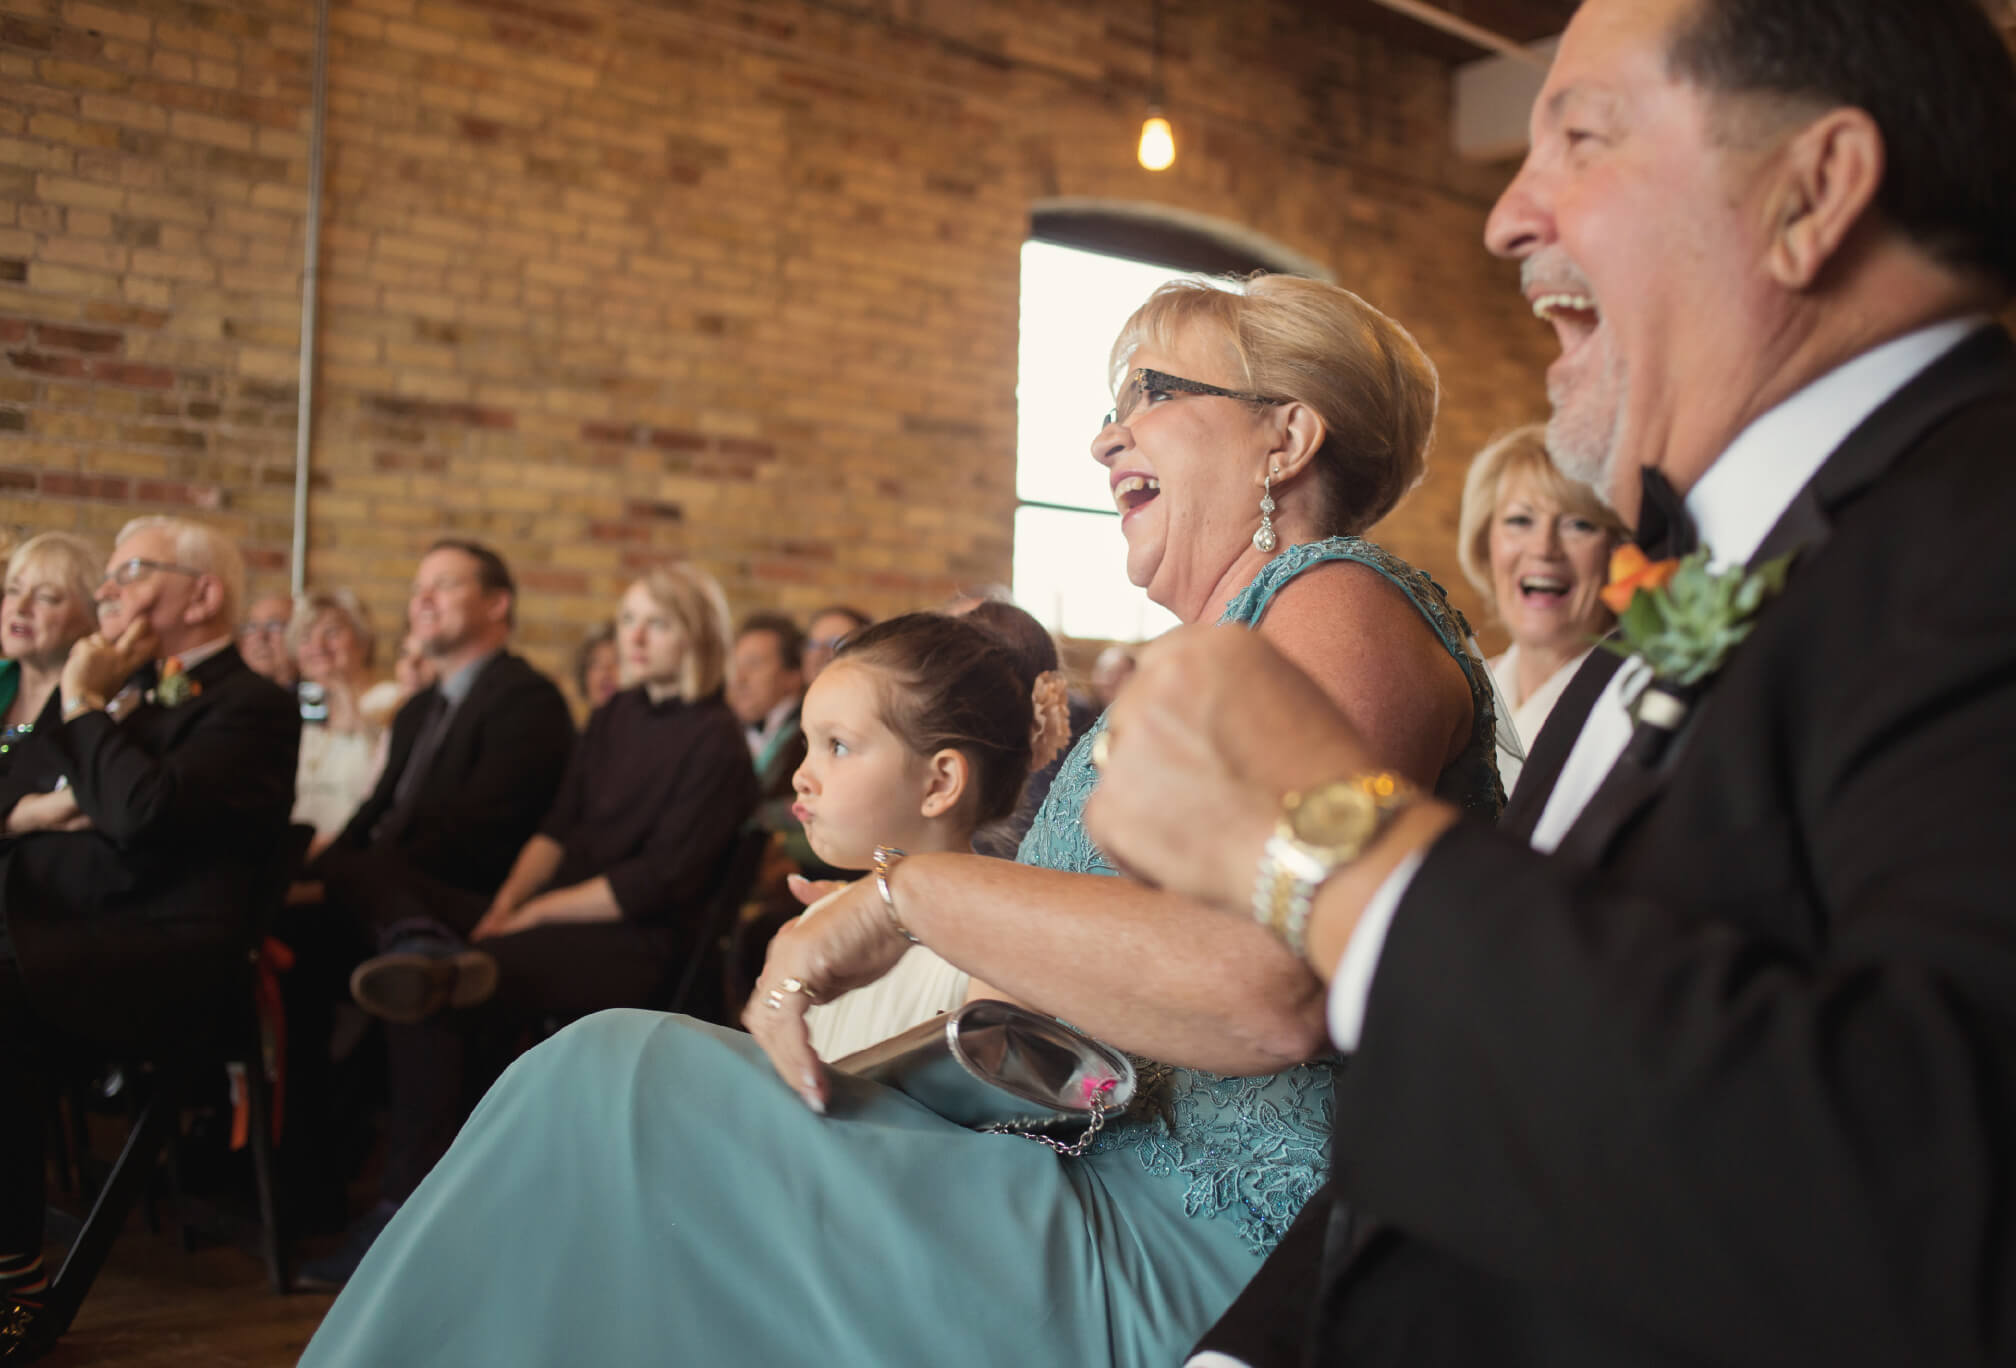 laughing ceremony photography toronto